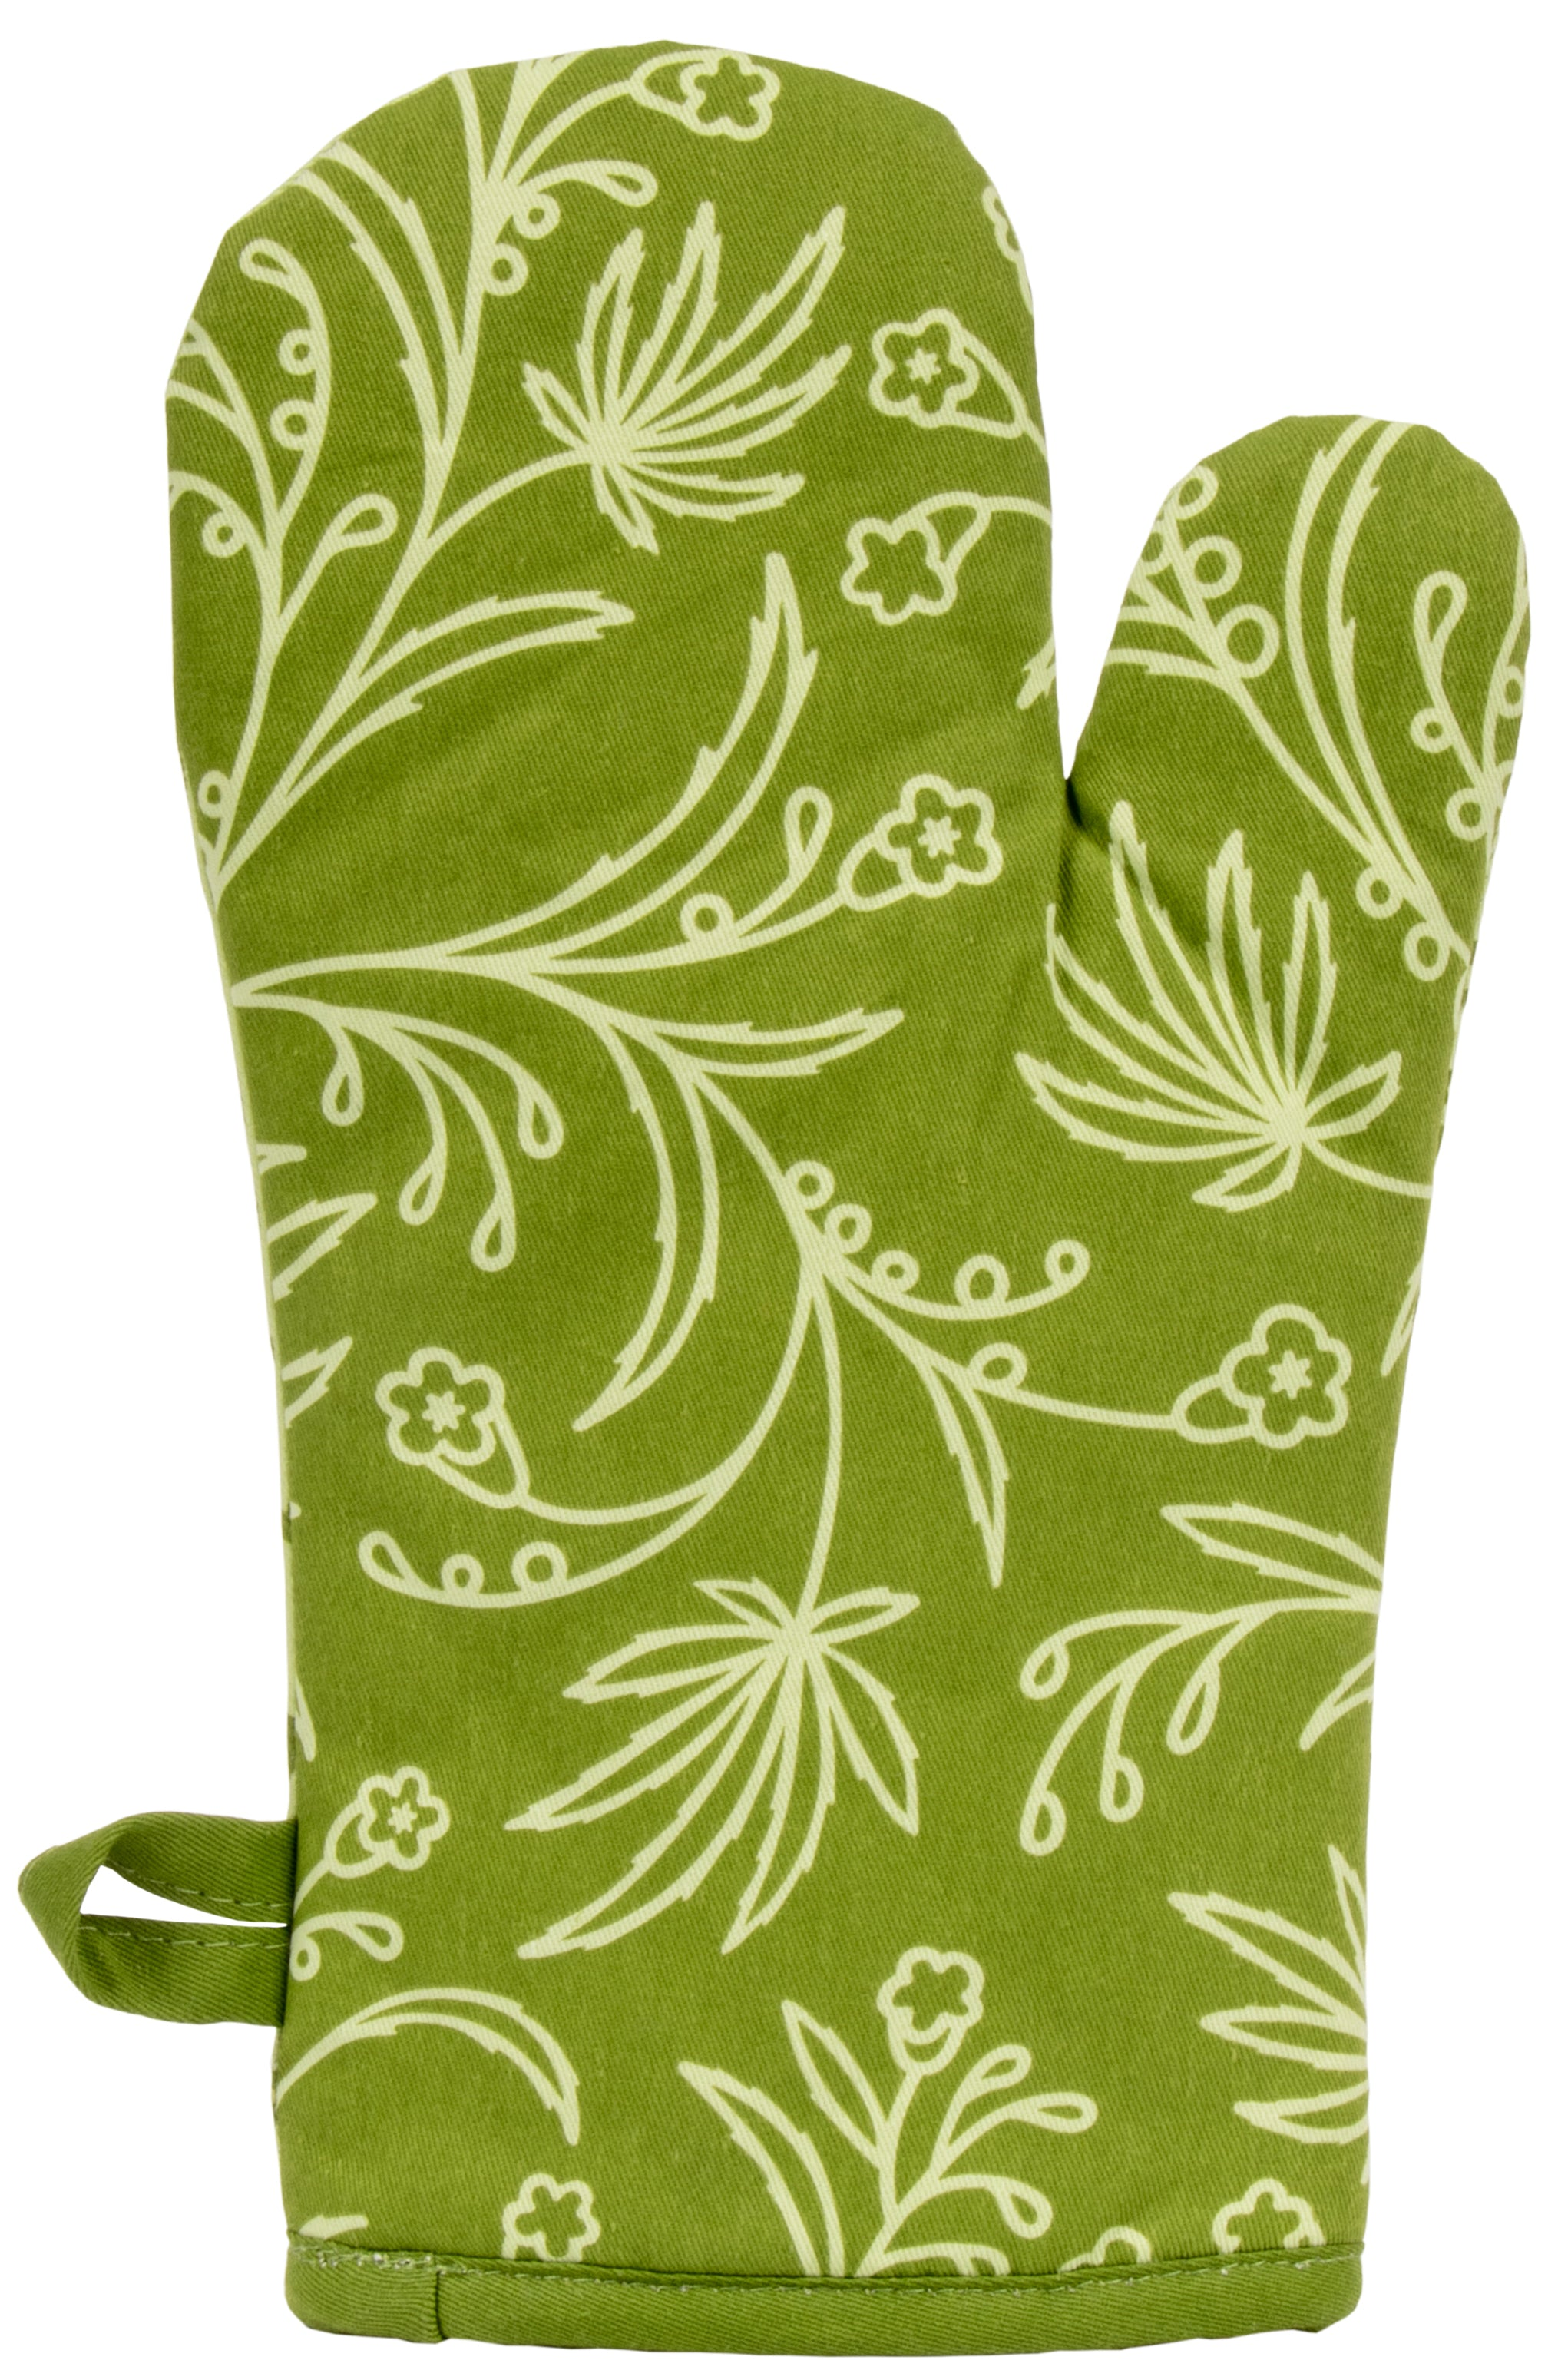 Blue Q Oven Mitt - Weed